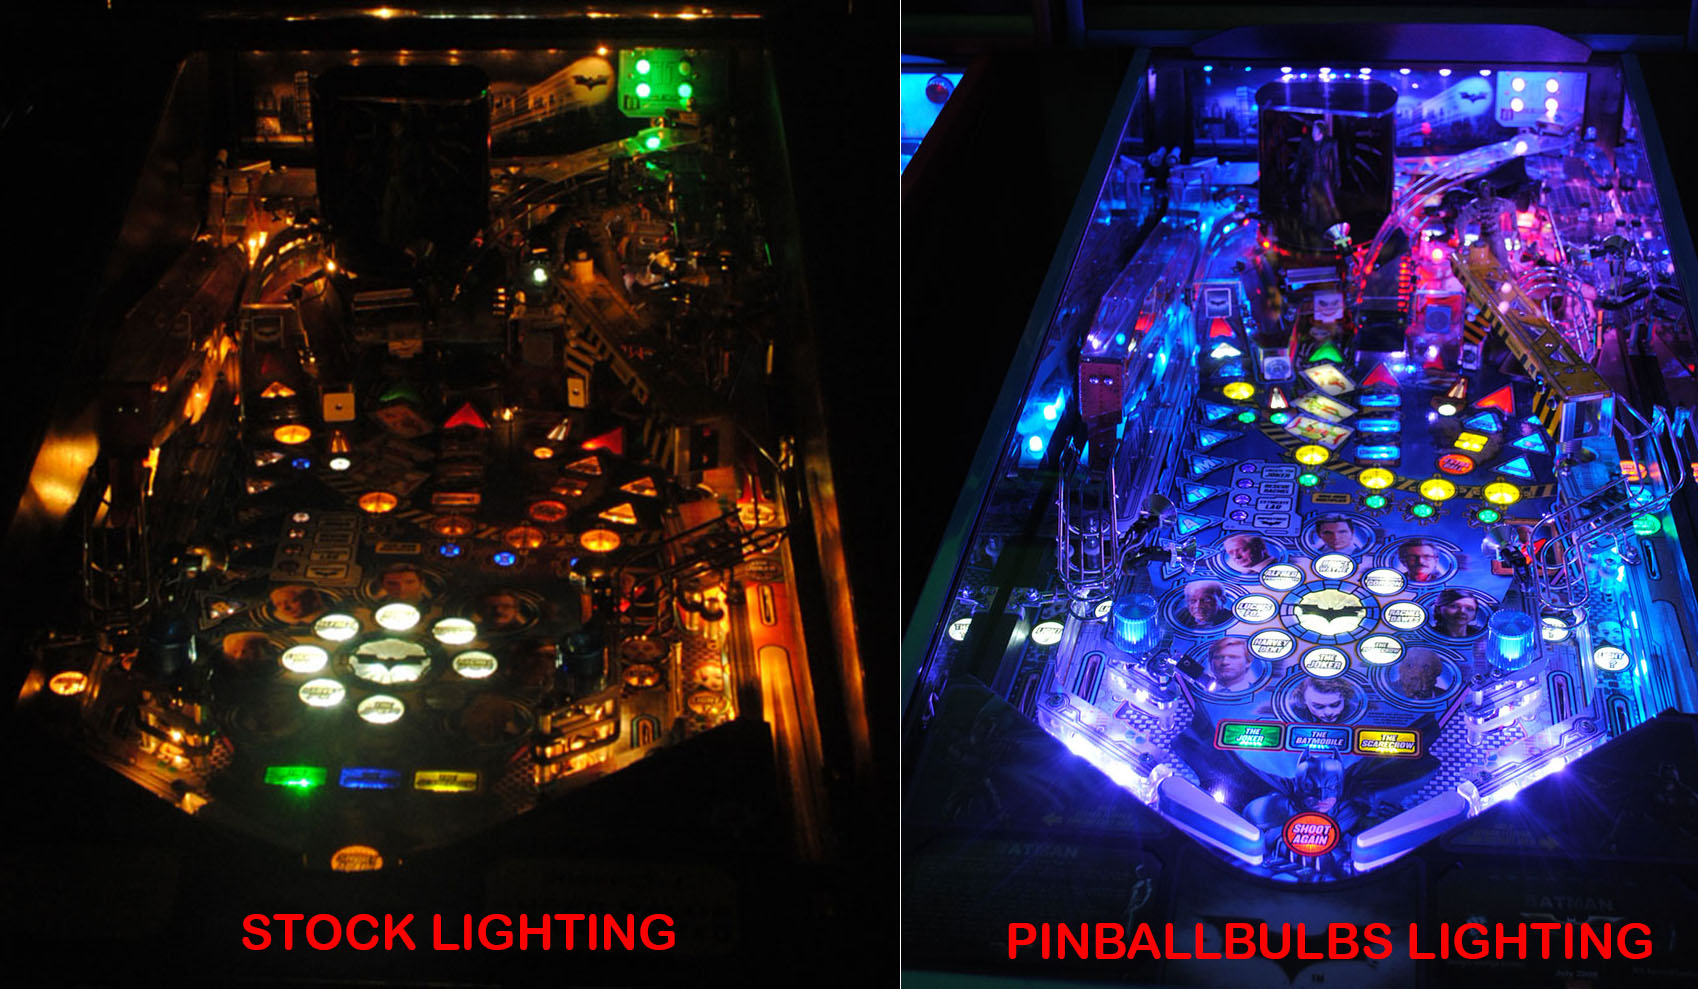 Pinball LED Lighting Kits & LED Lighting Kits | Highest Quality Pinball LEDs | Pinball Bulbs